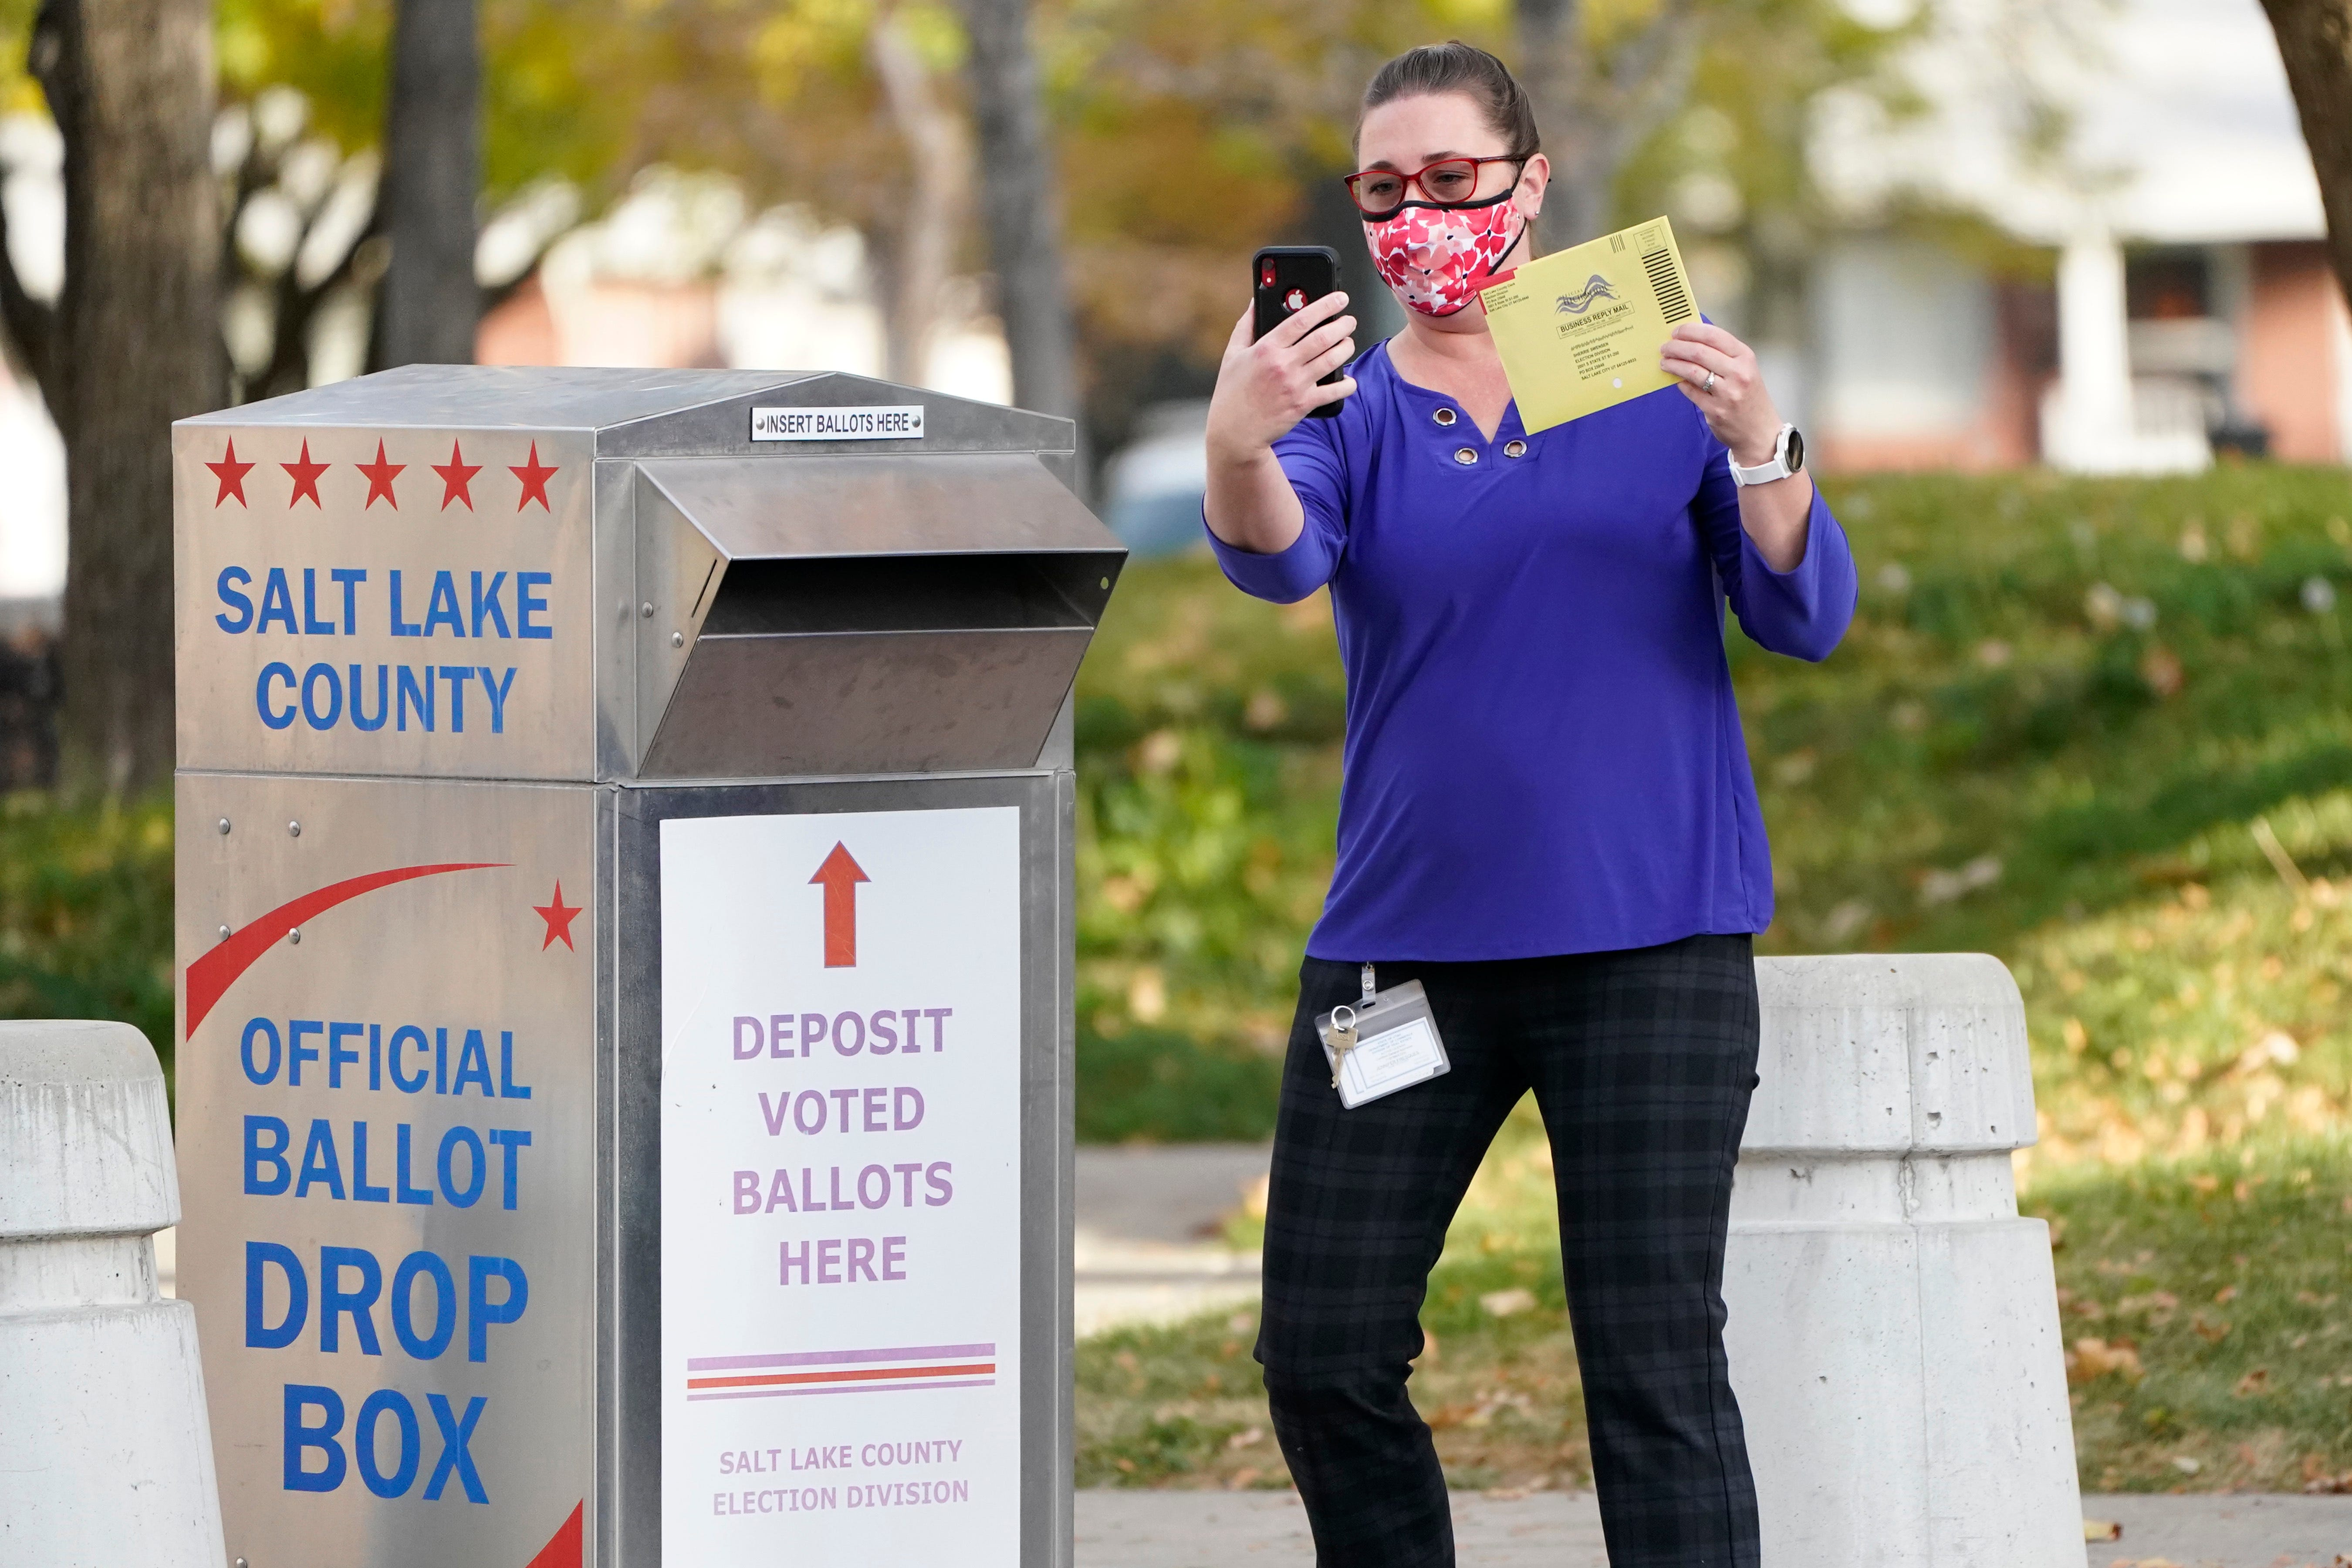 Are  ballot selfies  legal? Depends where you are voting, it s punishable in some states